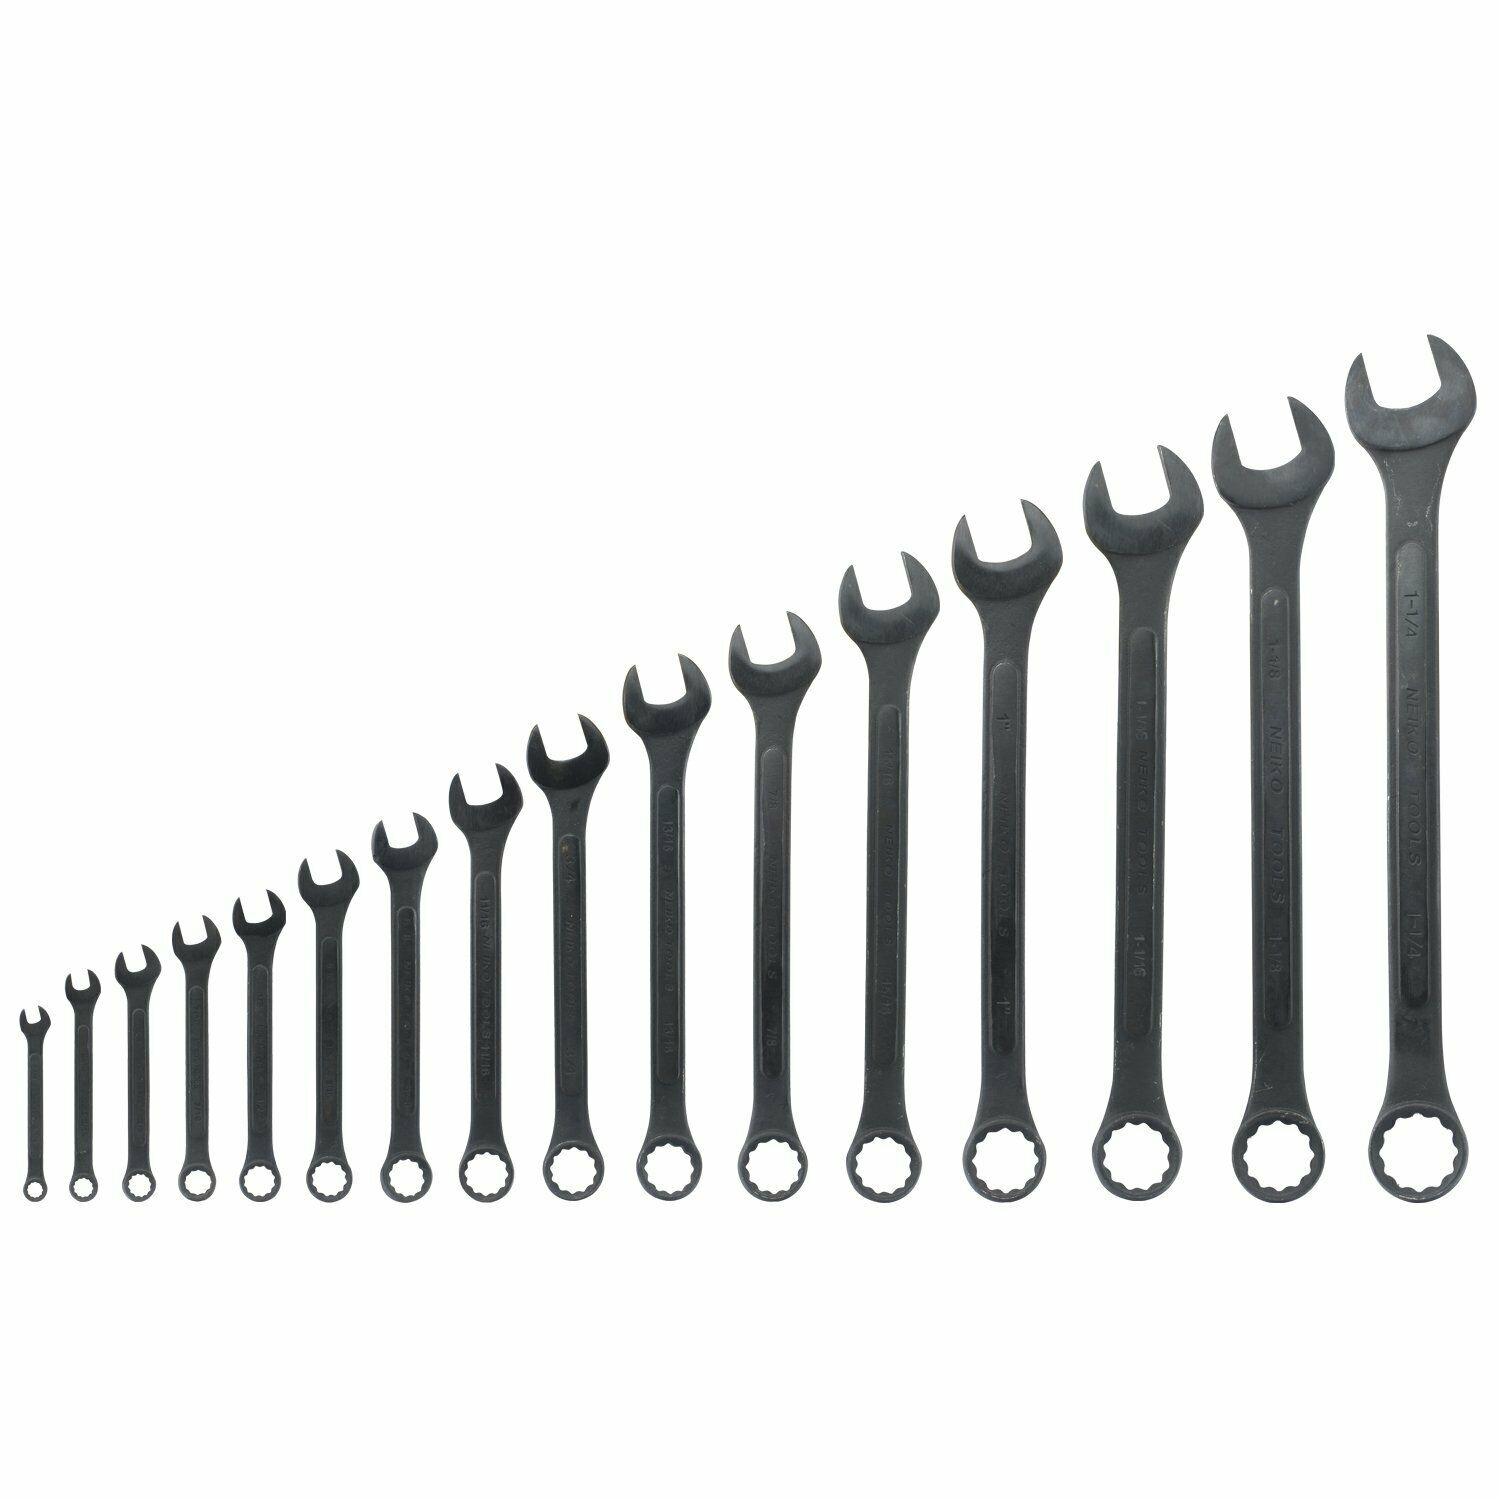 Neiko 03574A Jumbo Combination Wrench Set, 16 Piece   Raised Panel Construction